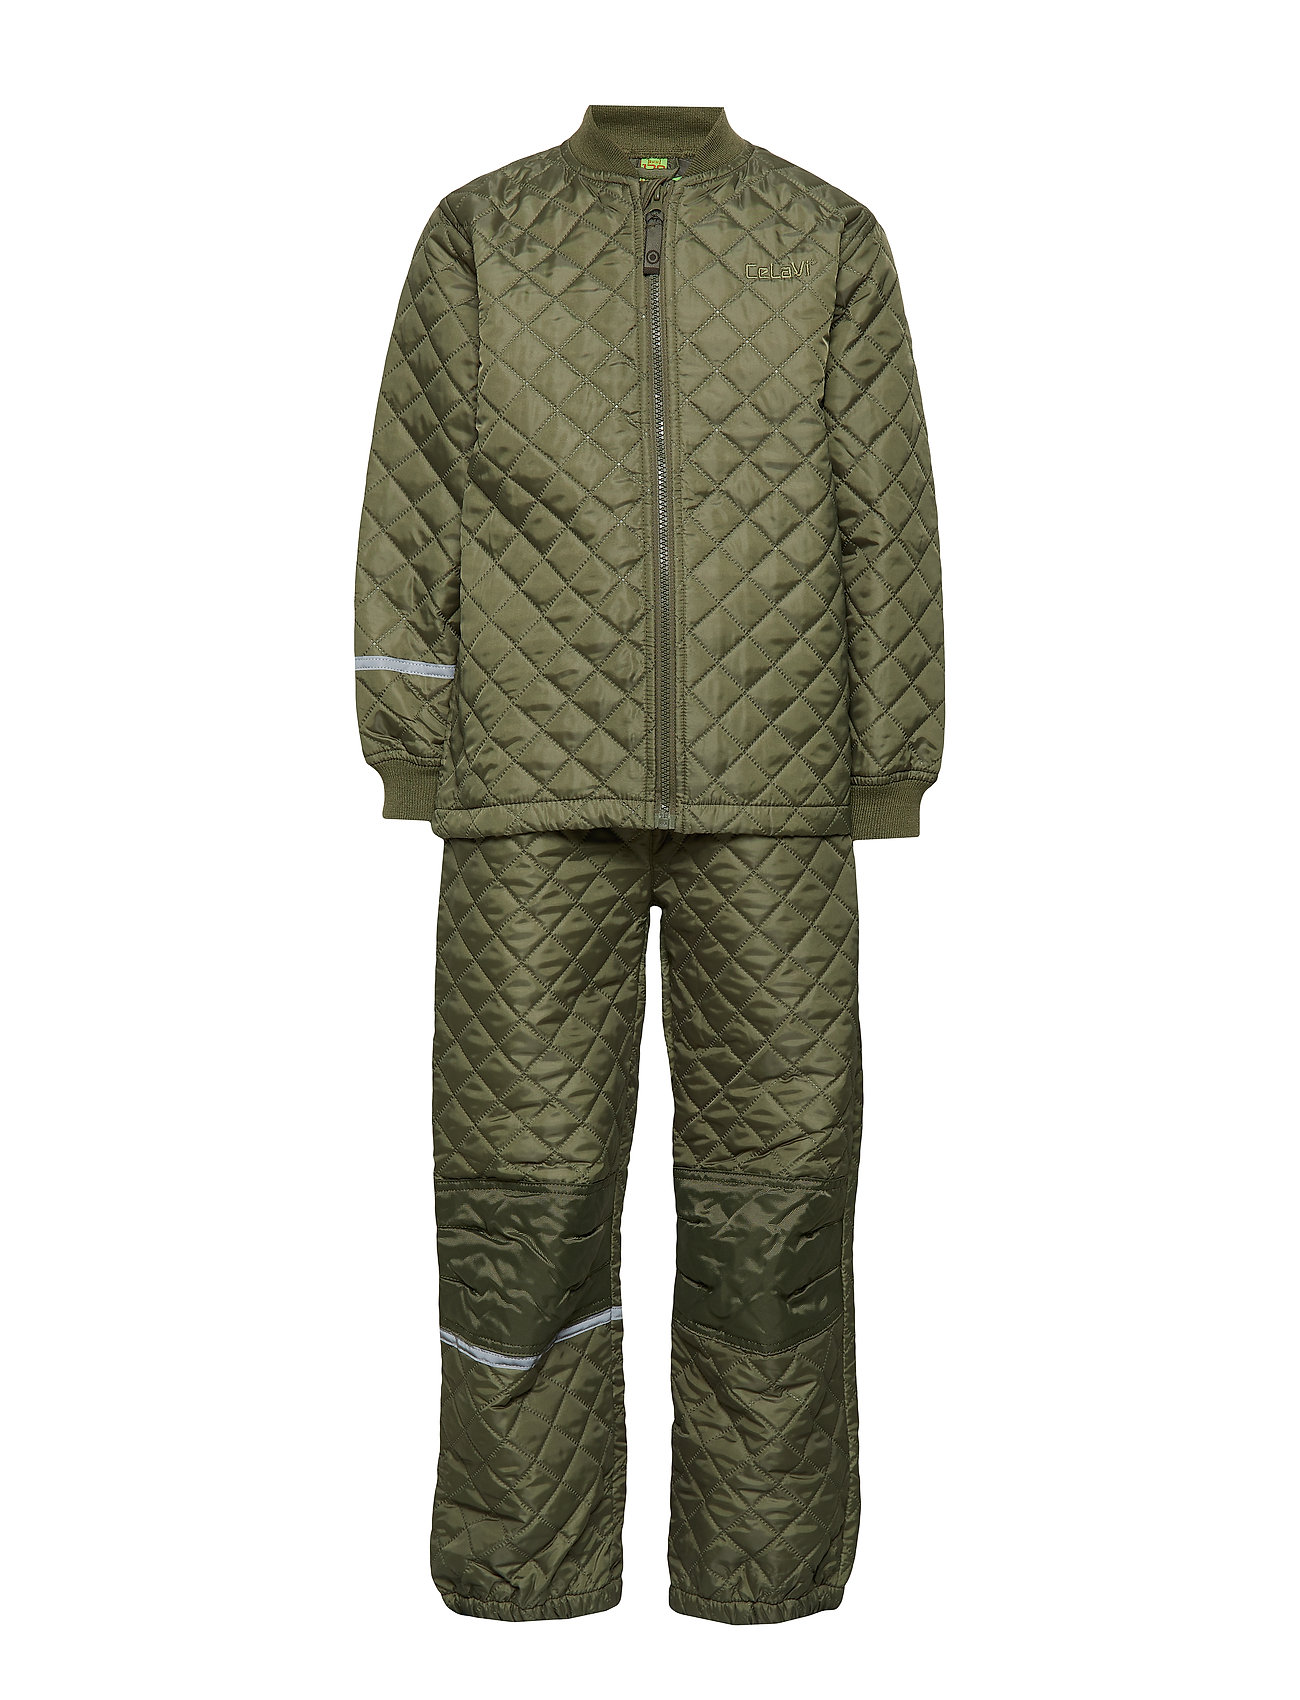 Image of Thermal Set -Solid Outerwear Thermo Outerwear Grøn CeLaVi (3047198593)